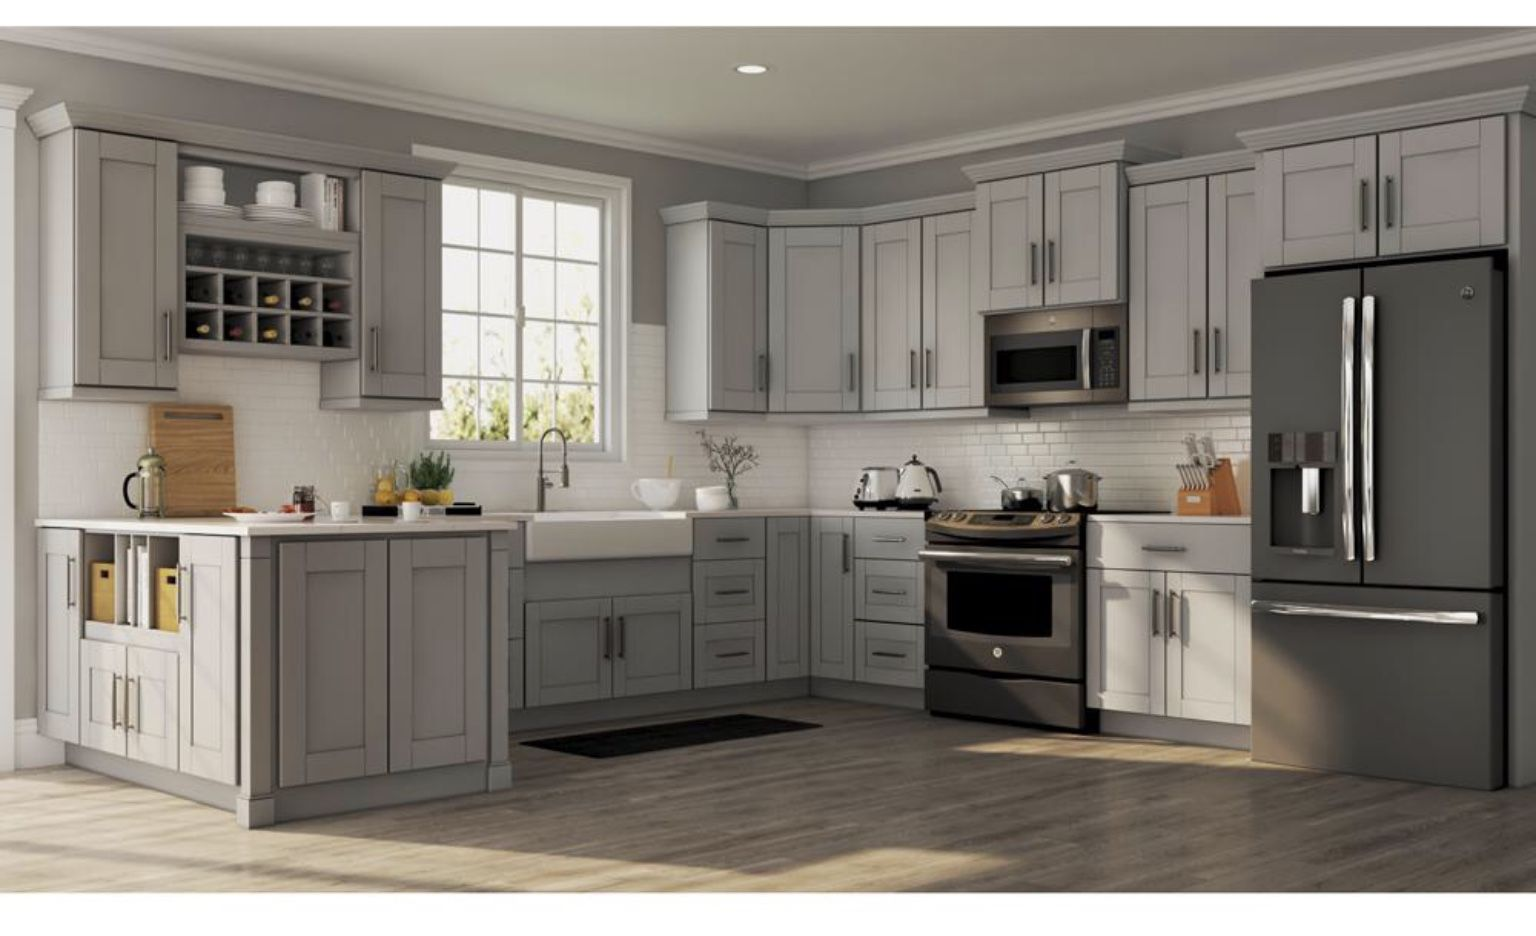 Pin By Cindy Ailey On Kitchen Remodel Ideas Home Depot Kitchen Kitchen Cabinets Home Depot Grey Kitchen Cabinets